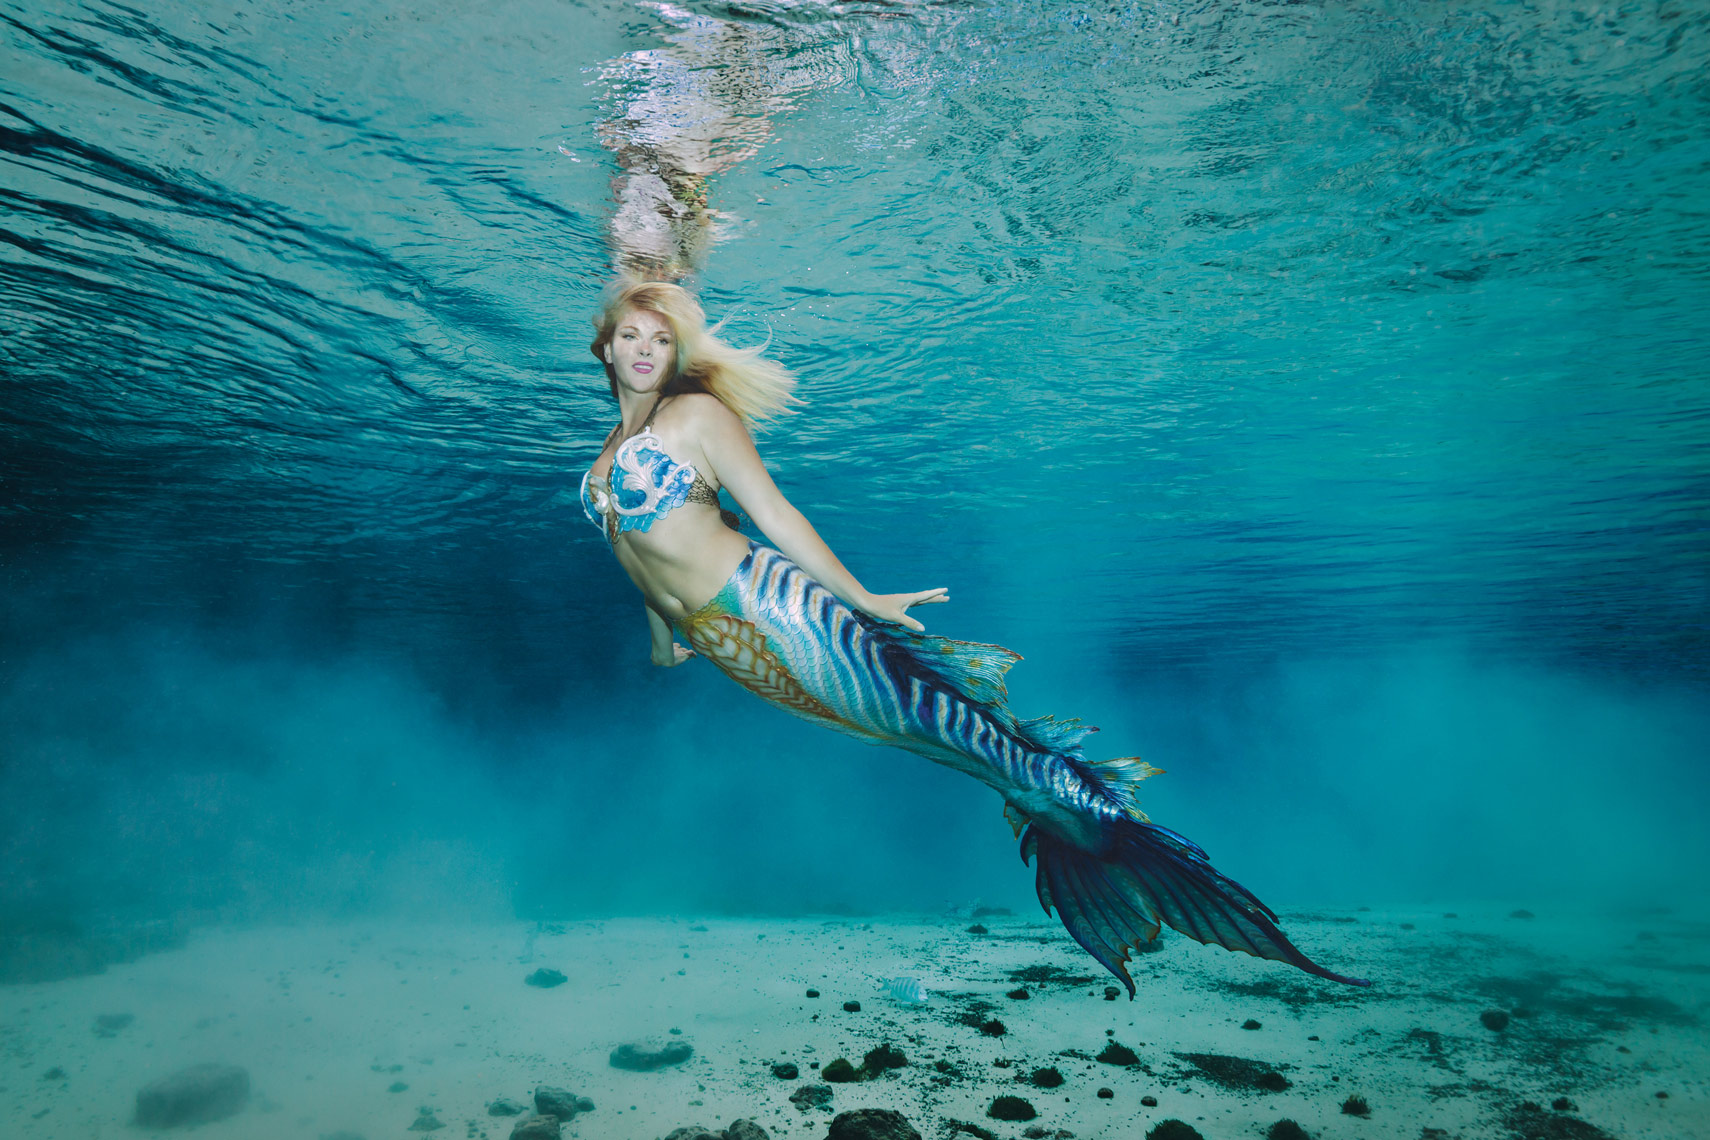 Mermaid-Denise